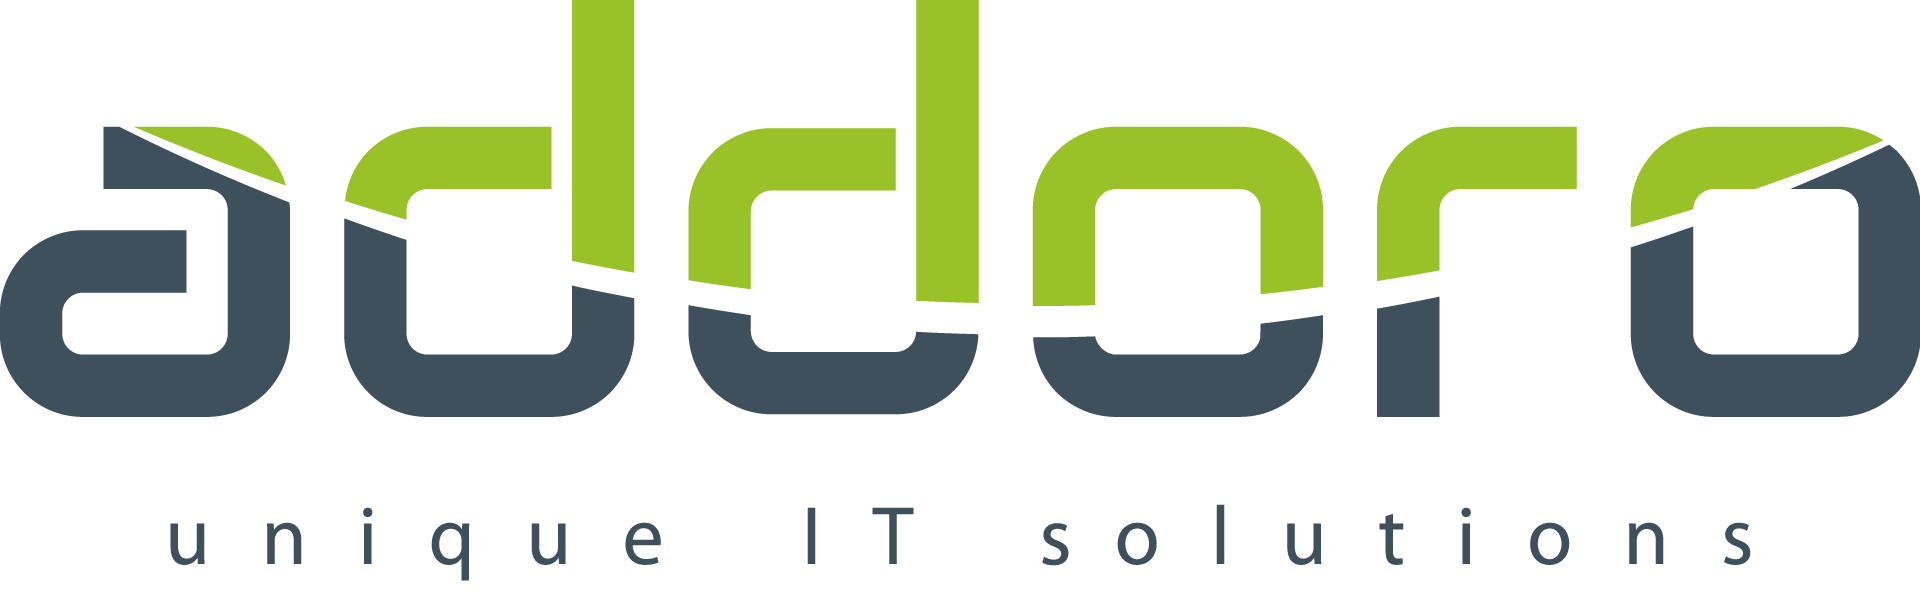 addoro unique IT solutions